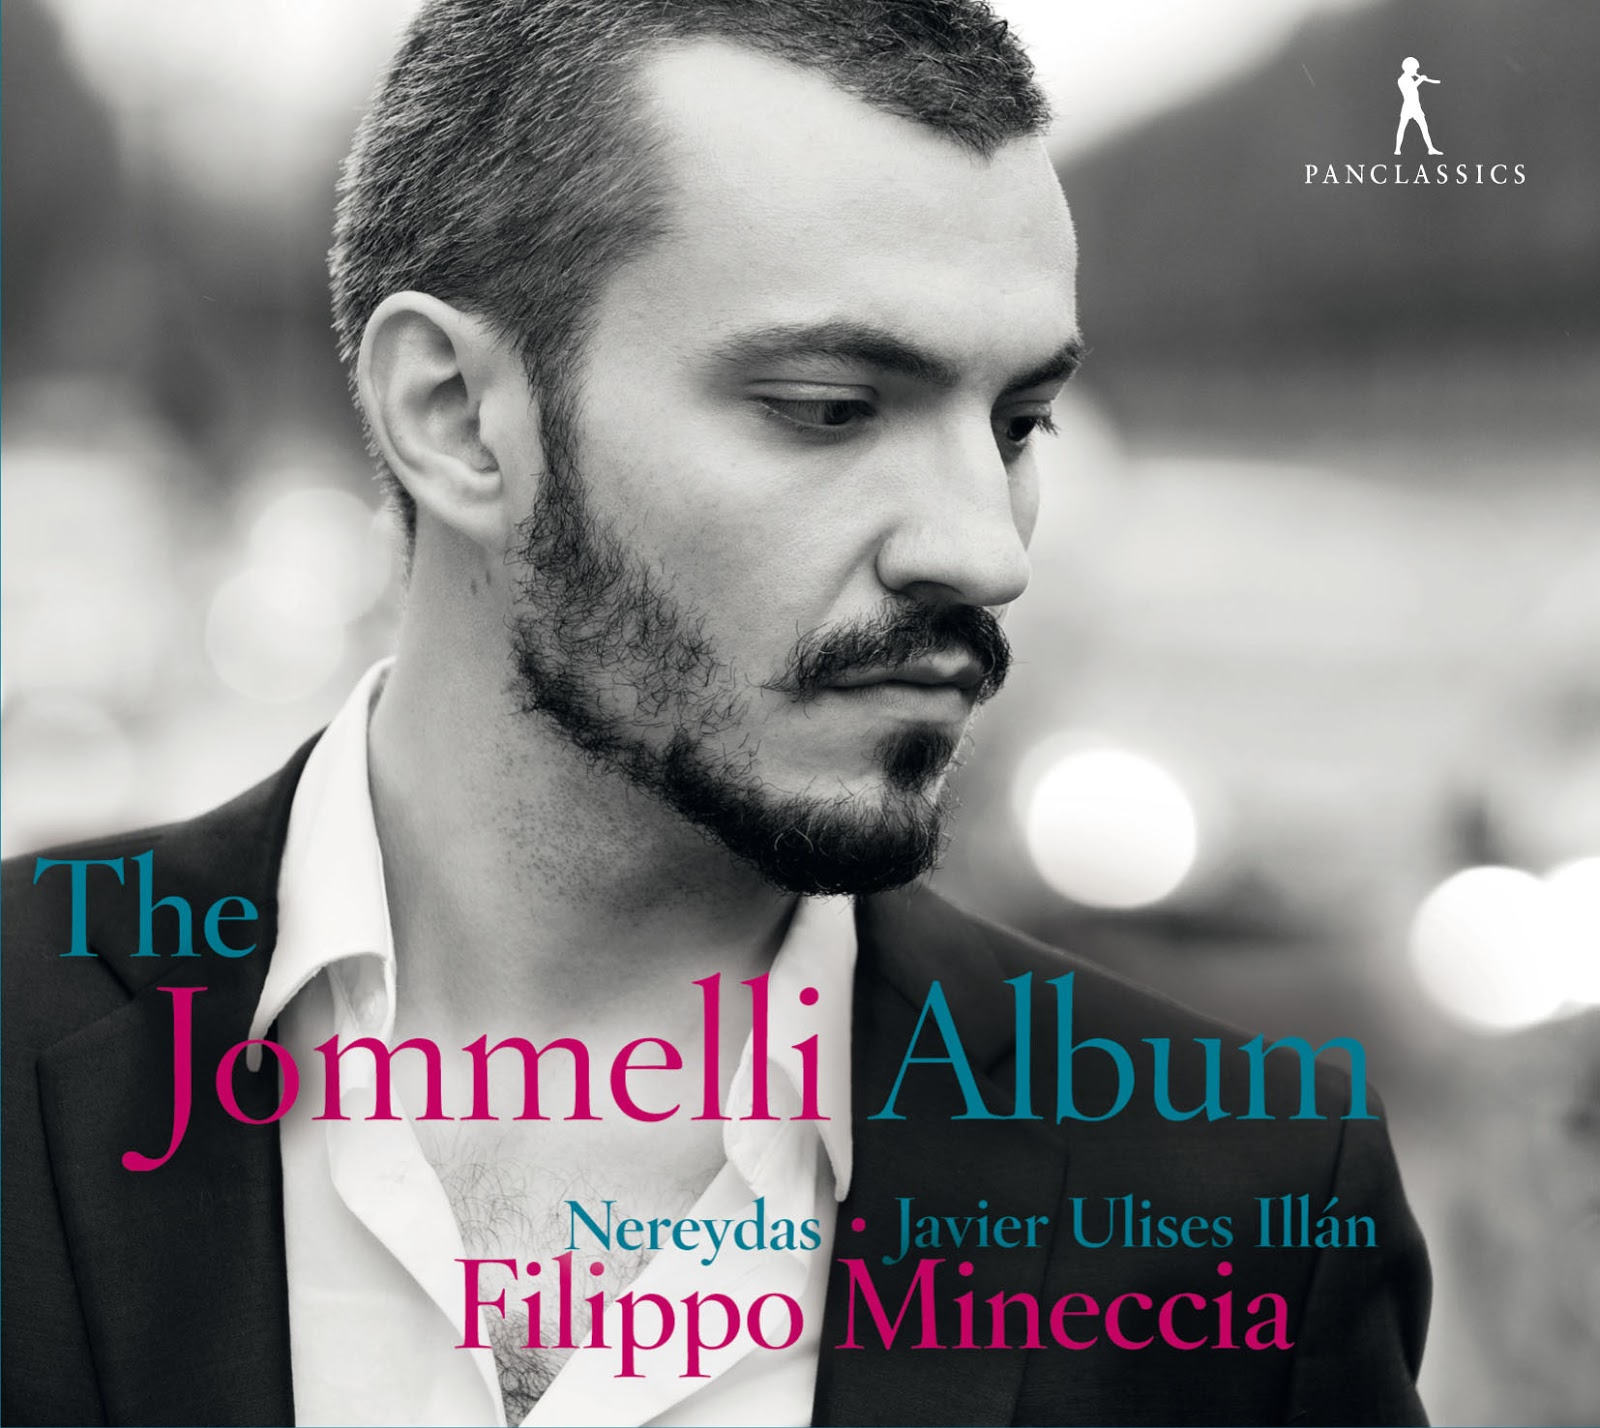 CD REVIEW: Niccolò Jommelli - THE JOMMELLI ALBUM (Pan Classics PC 10352)